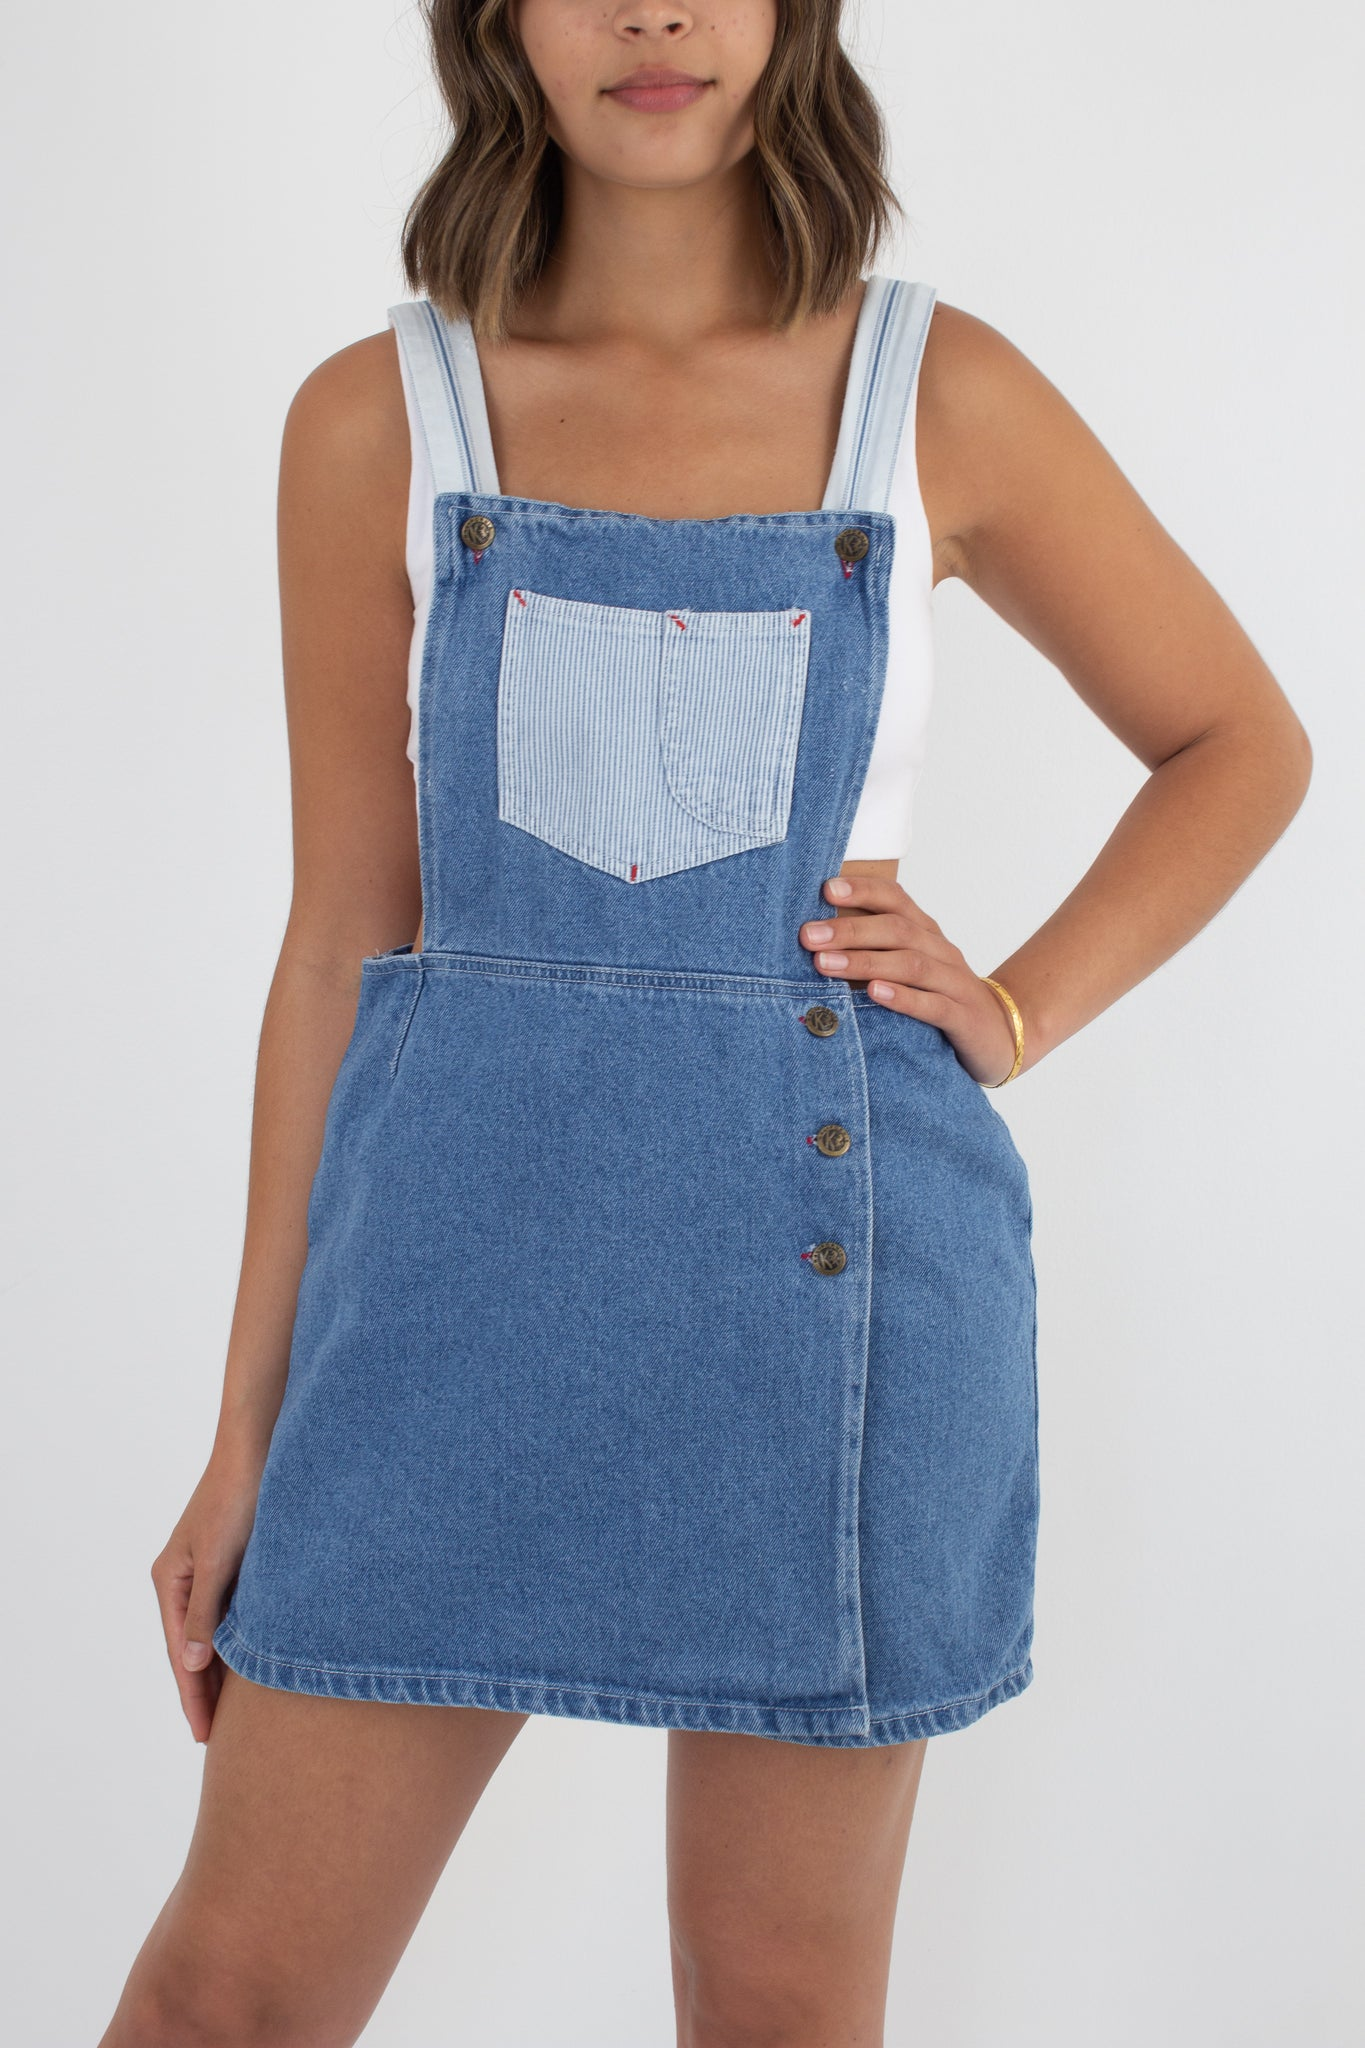 Blue Denim Short Overalls Dress - Size M